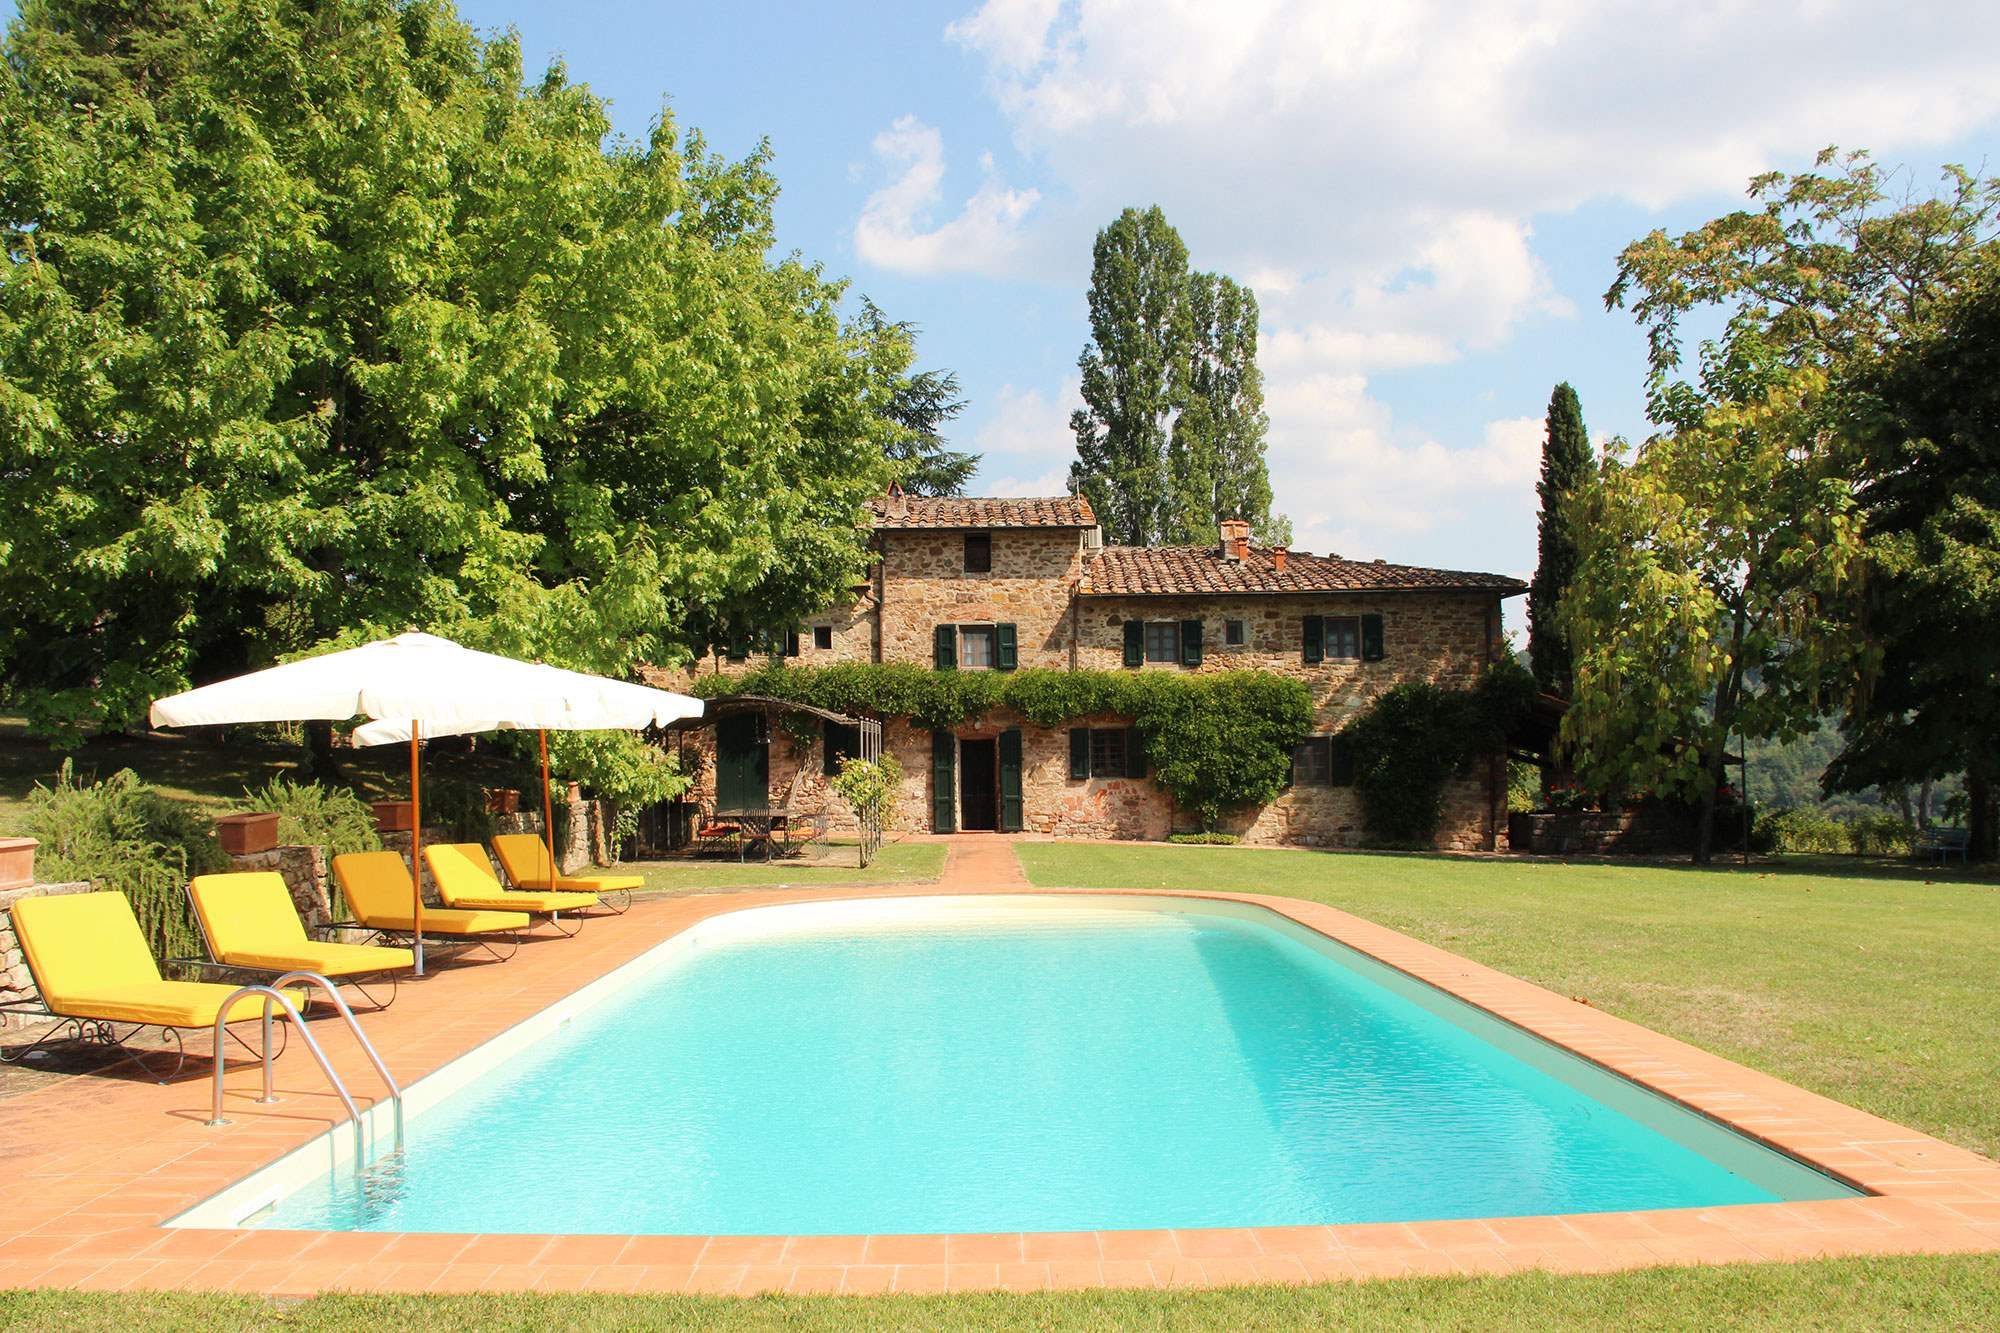 Villa Felicita, Main house only, 6 persons rate, 3 bedroom villa in Chianti & Countryside, Tuscany Photo #11